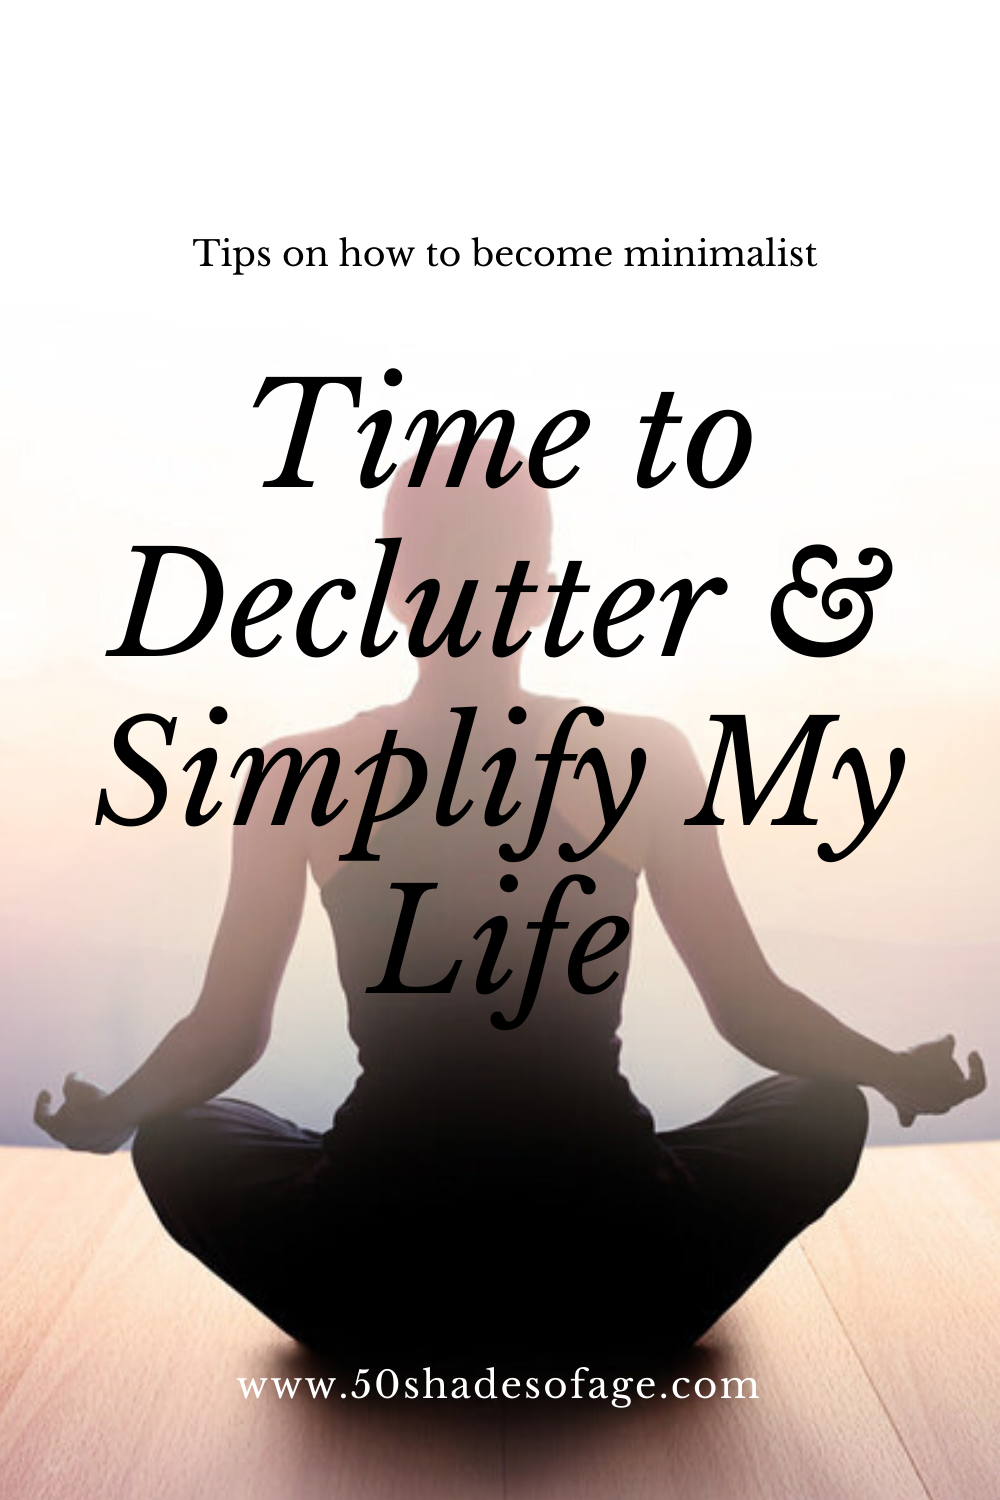 Time to Declutter and Simplify My Life